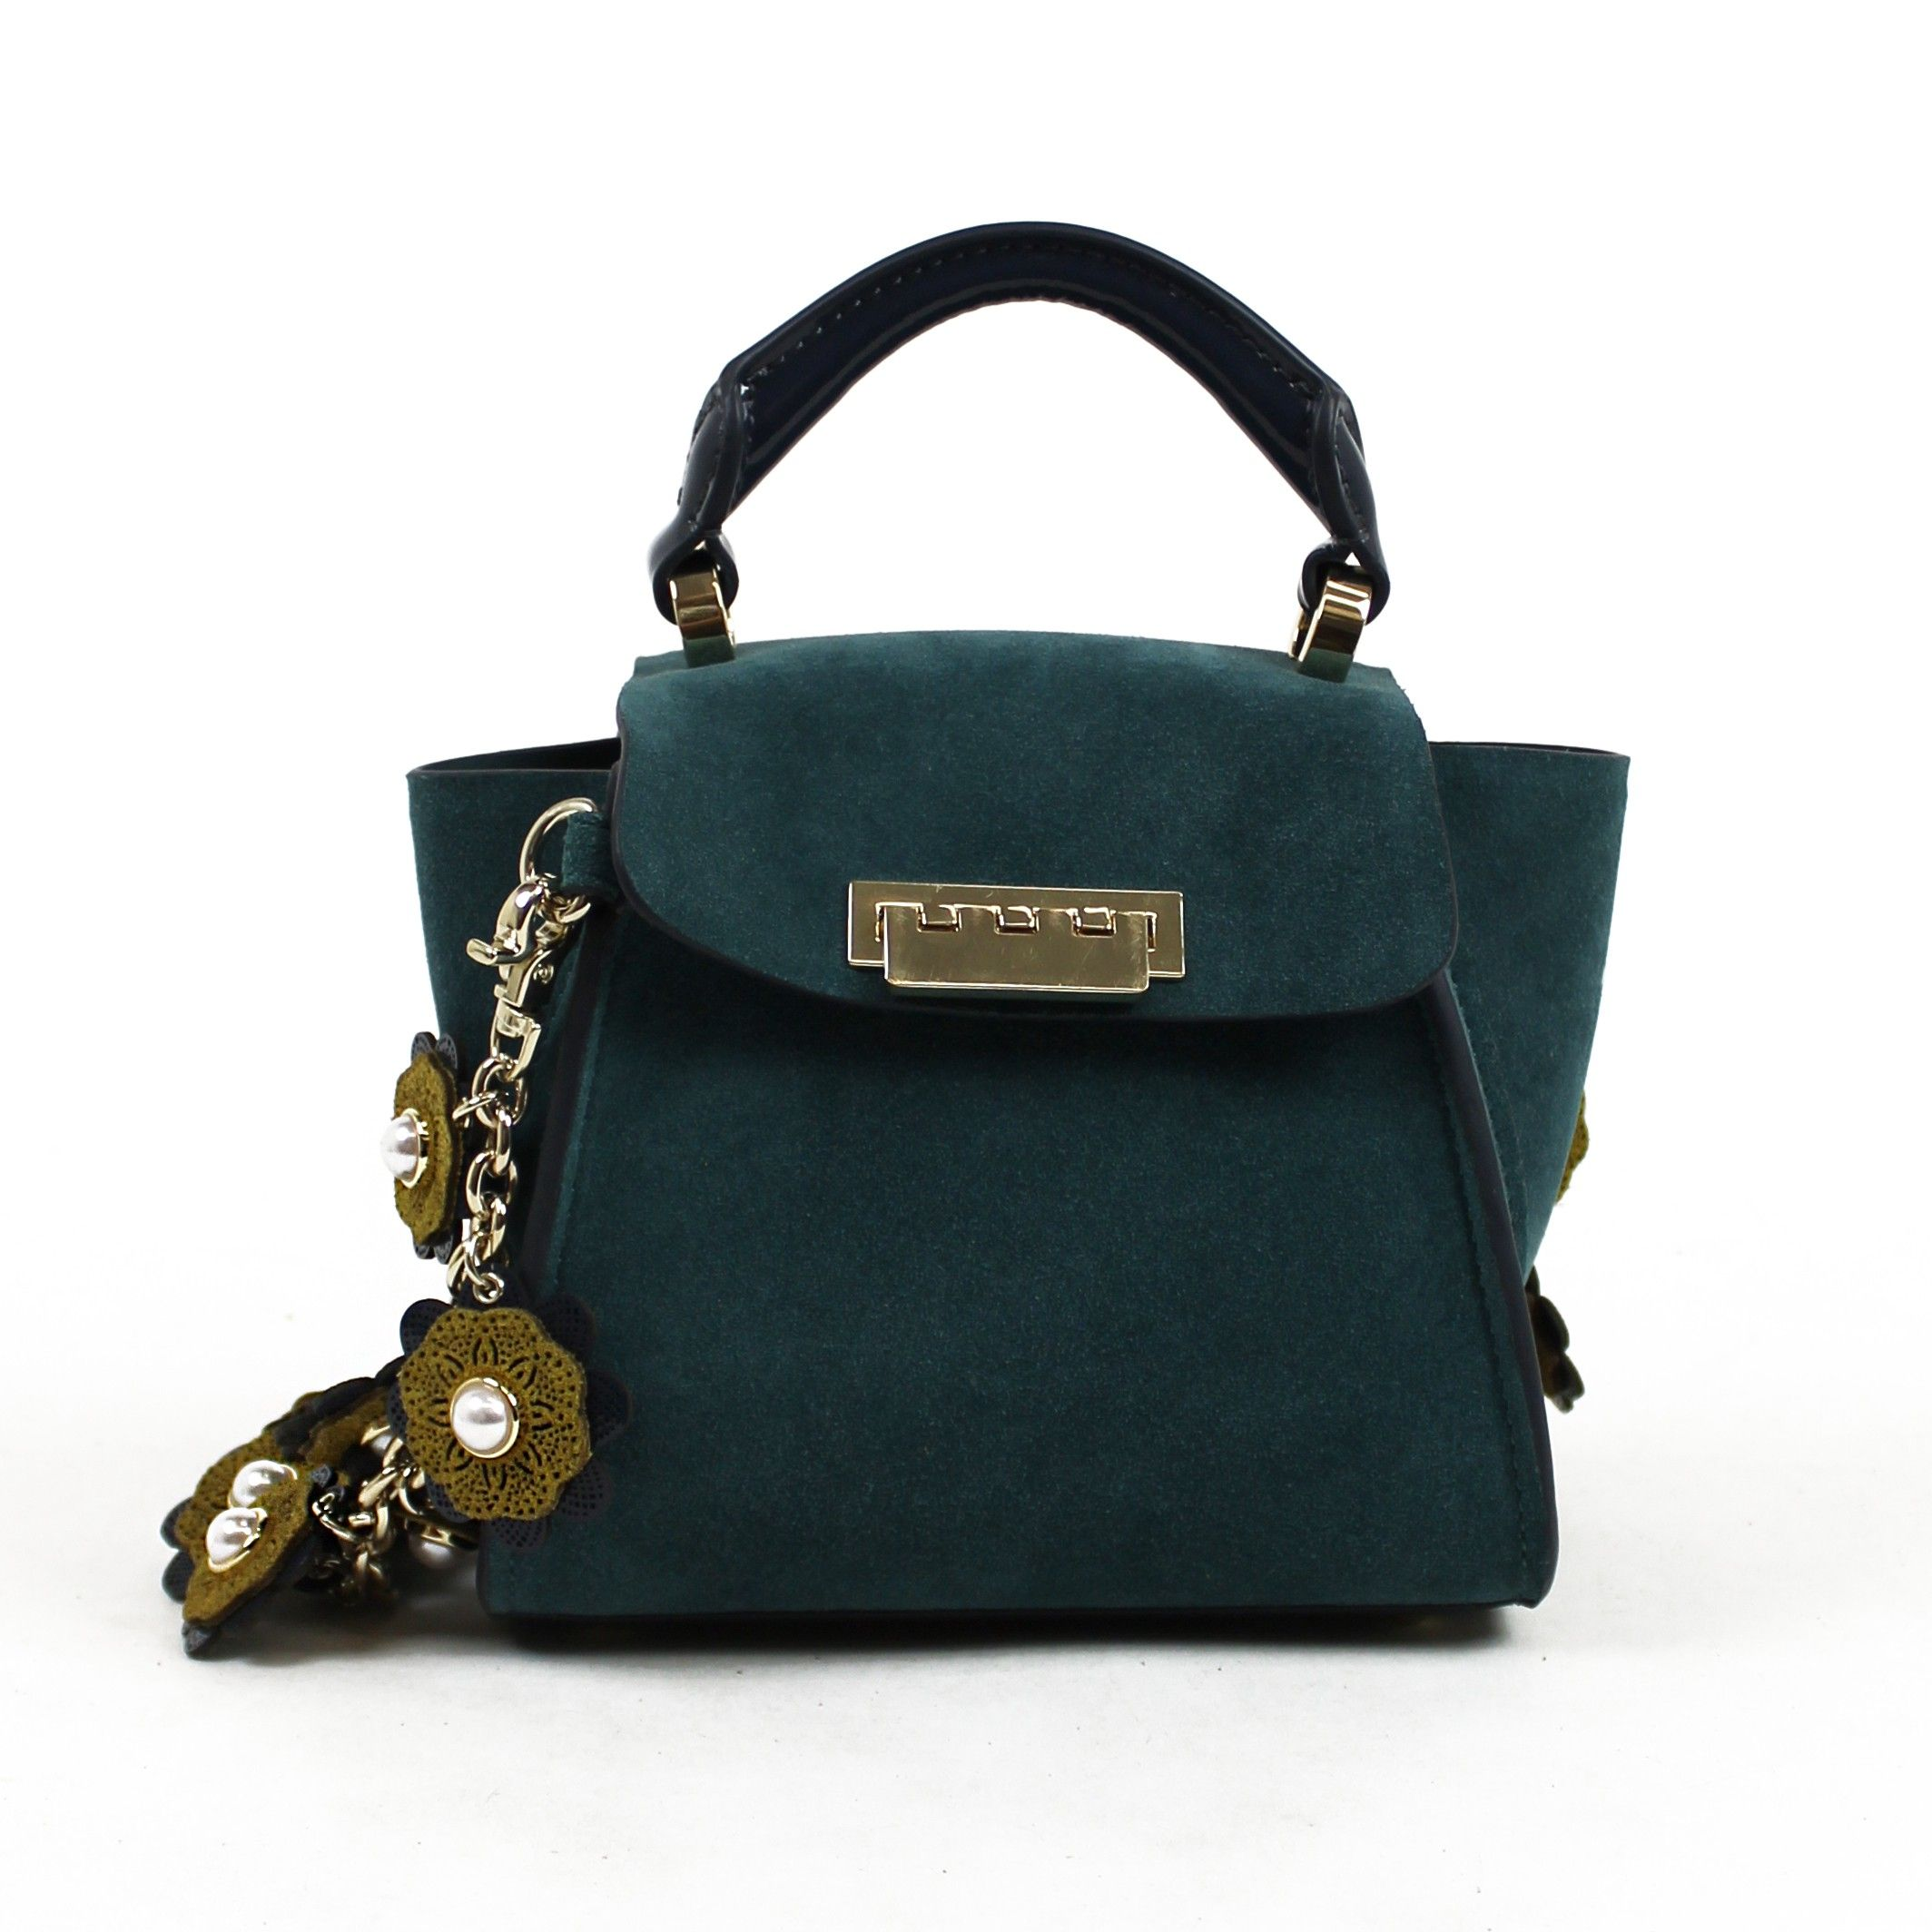 ZAC ZAC POSEN Eartha Iconic Top Handle Mini Colorblock in Teal.   zaczacposen  bags  hand bags   0df37b26660a3